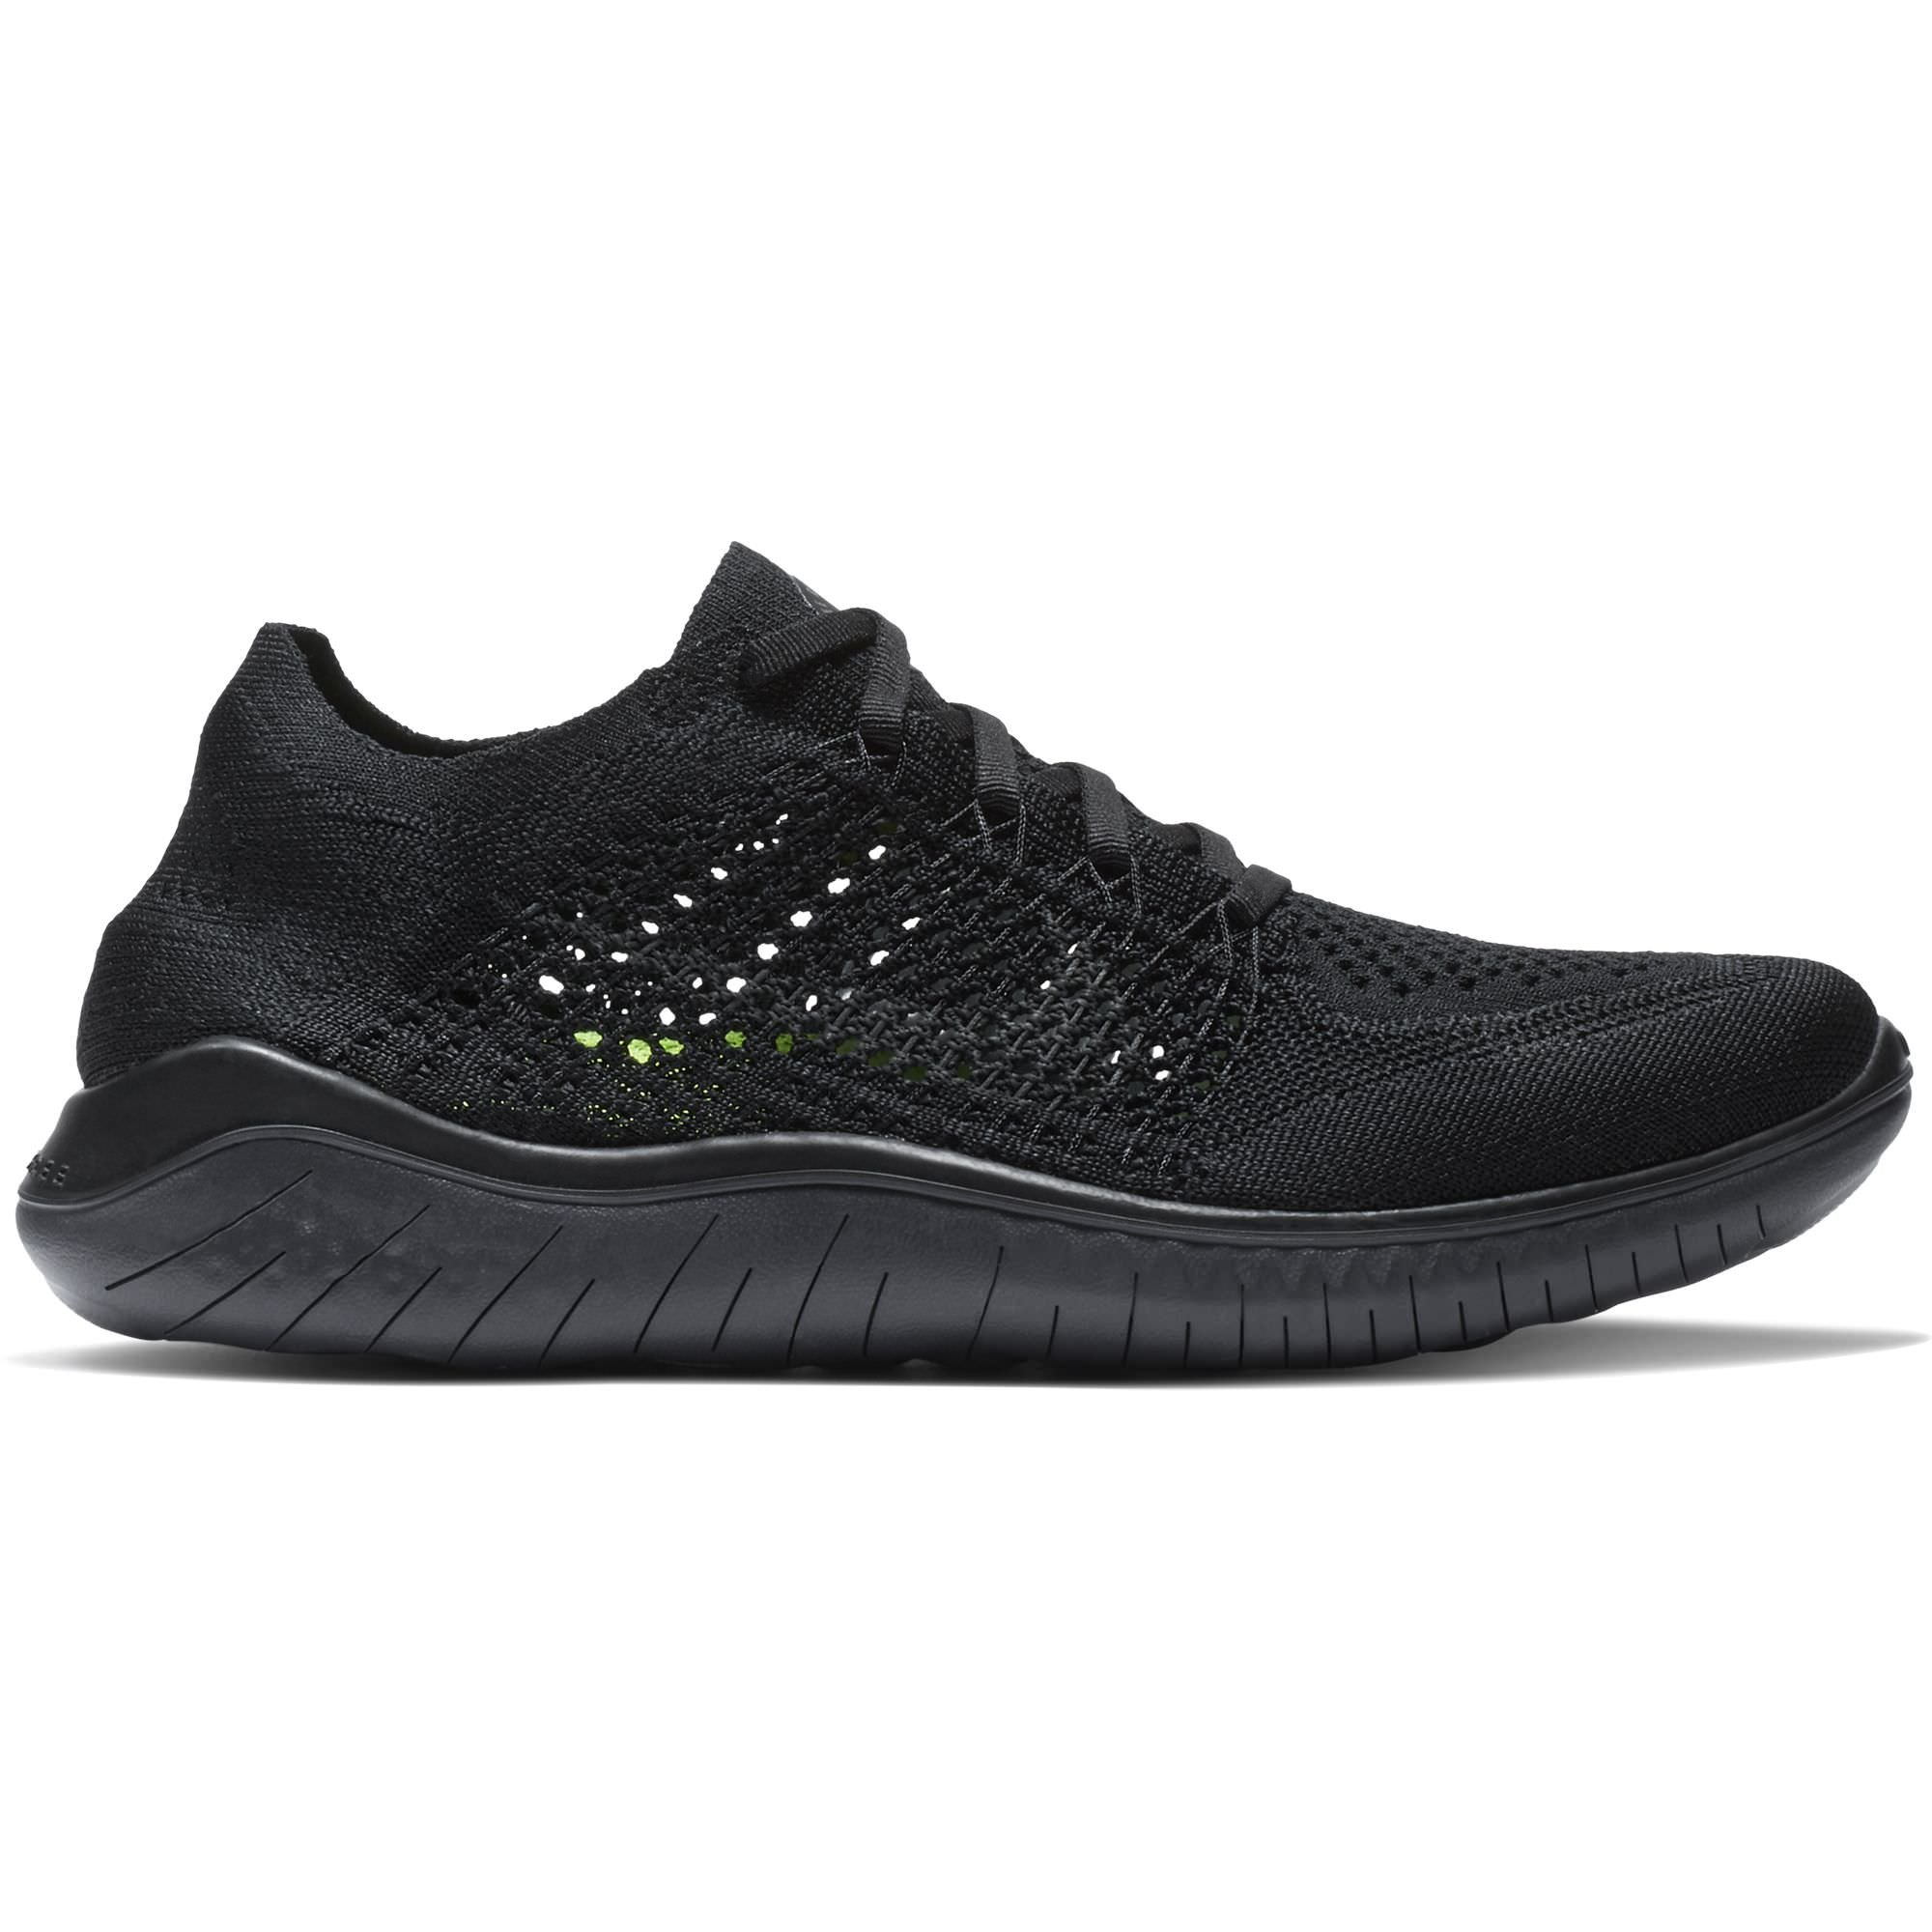 size 40 f3ab7 1bf4c Galleon - NIKE Women s Free RN Flyknit Running Shoe Black Anthracite 6